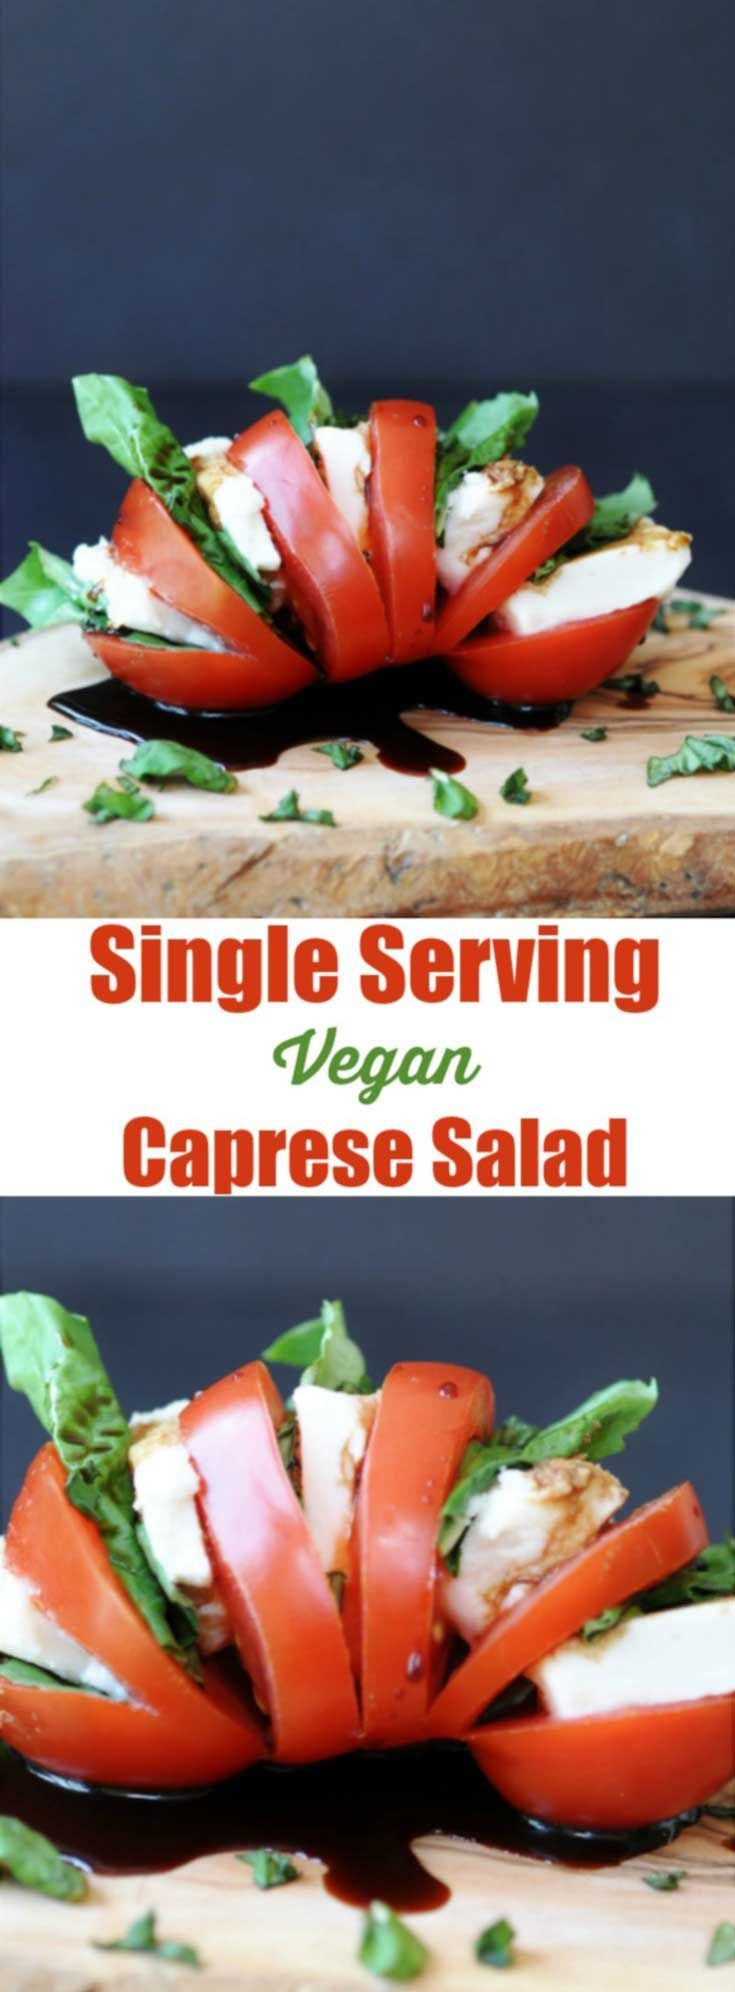 Single Serving Vegan Caprese Salad! This delicious and simple recipe makes the perfect lunch or appetizer for one. All you need is a tomato, some vegan mozzarella, basil, and balsamic vinegar. http://www.veganosity.com